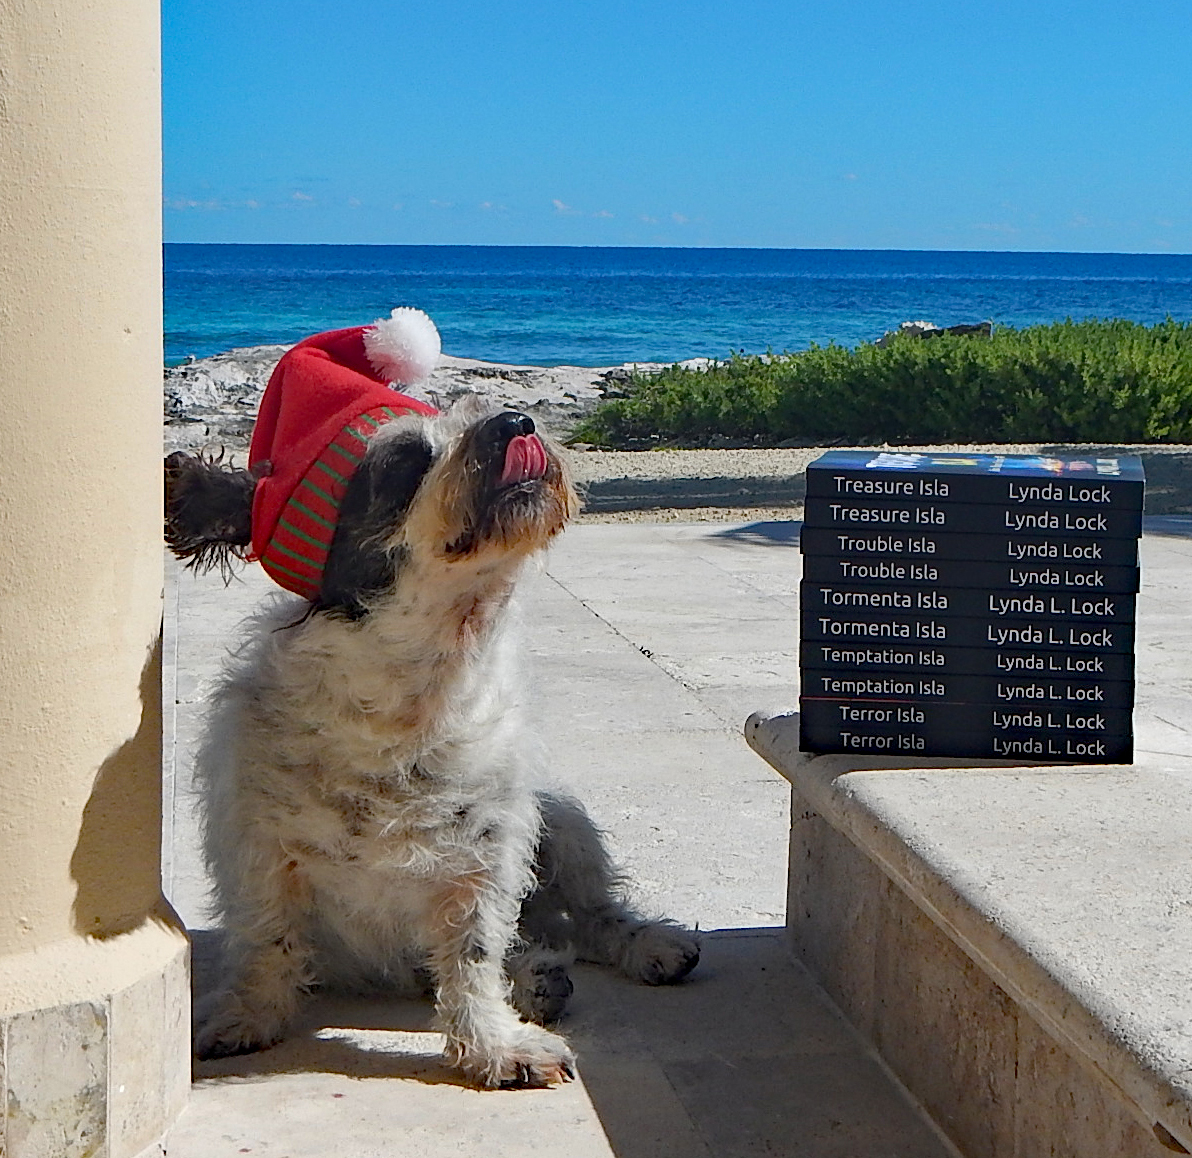 @syd_akaYog Gud mornin' hoomans and fur-babies. Will youse follows us back? Woof! Woof! Sparky, hero of the Isla Mujeres Mystery novels. #rescueismyfavouritebreed #dogsoftwitter #readerswanted #writerslift #mondaythoughts #mystery